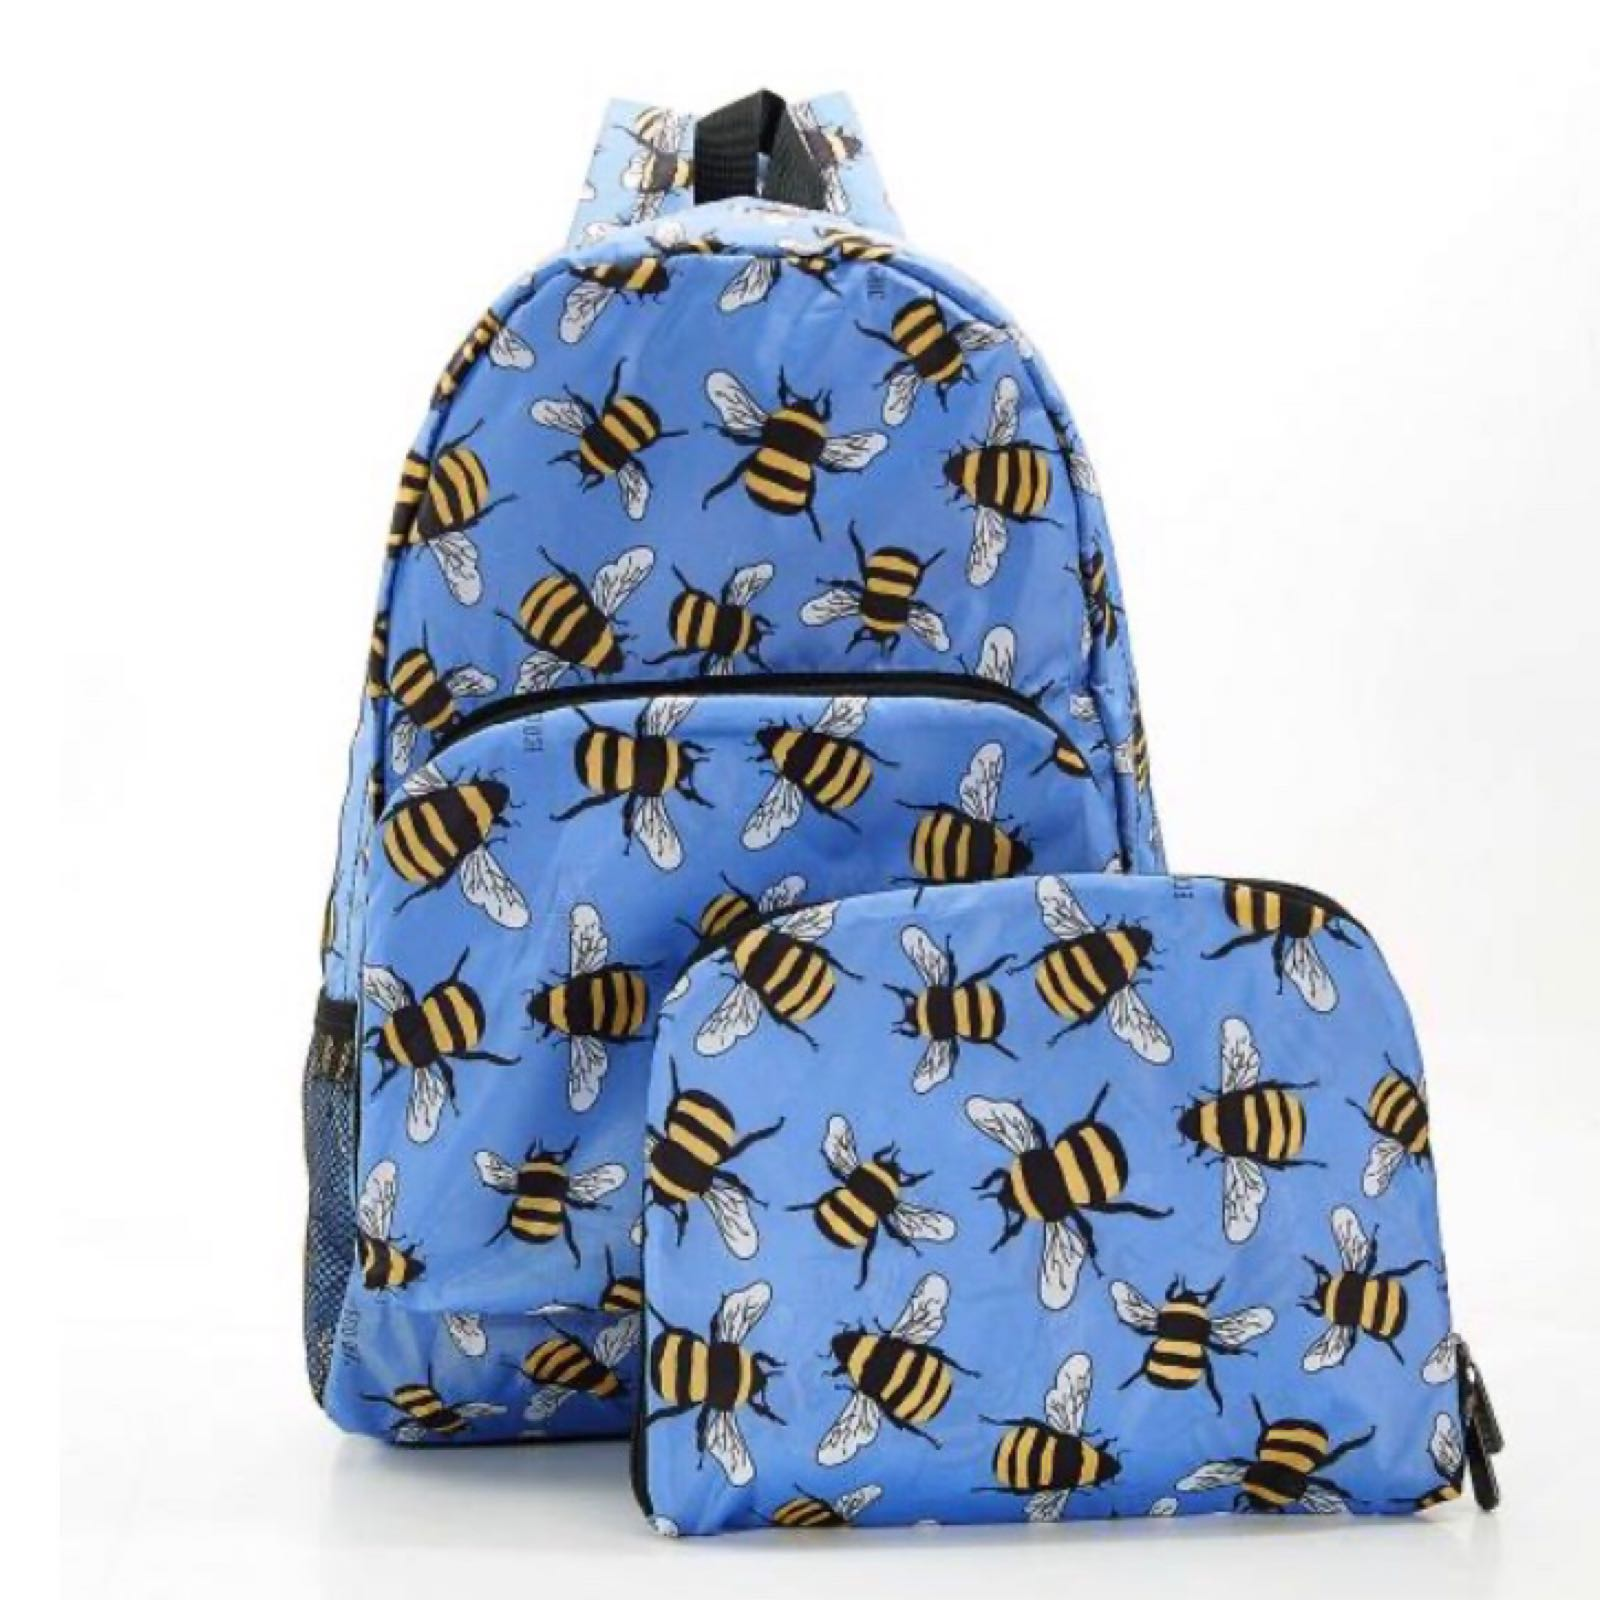 'Bees' Foldable Backpack